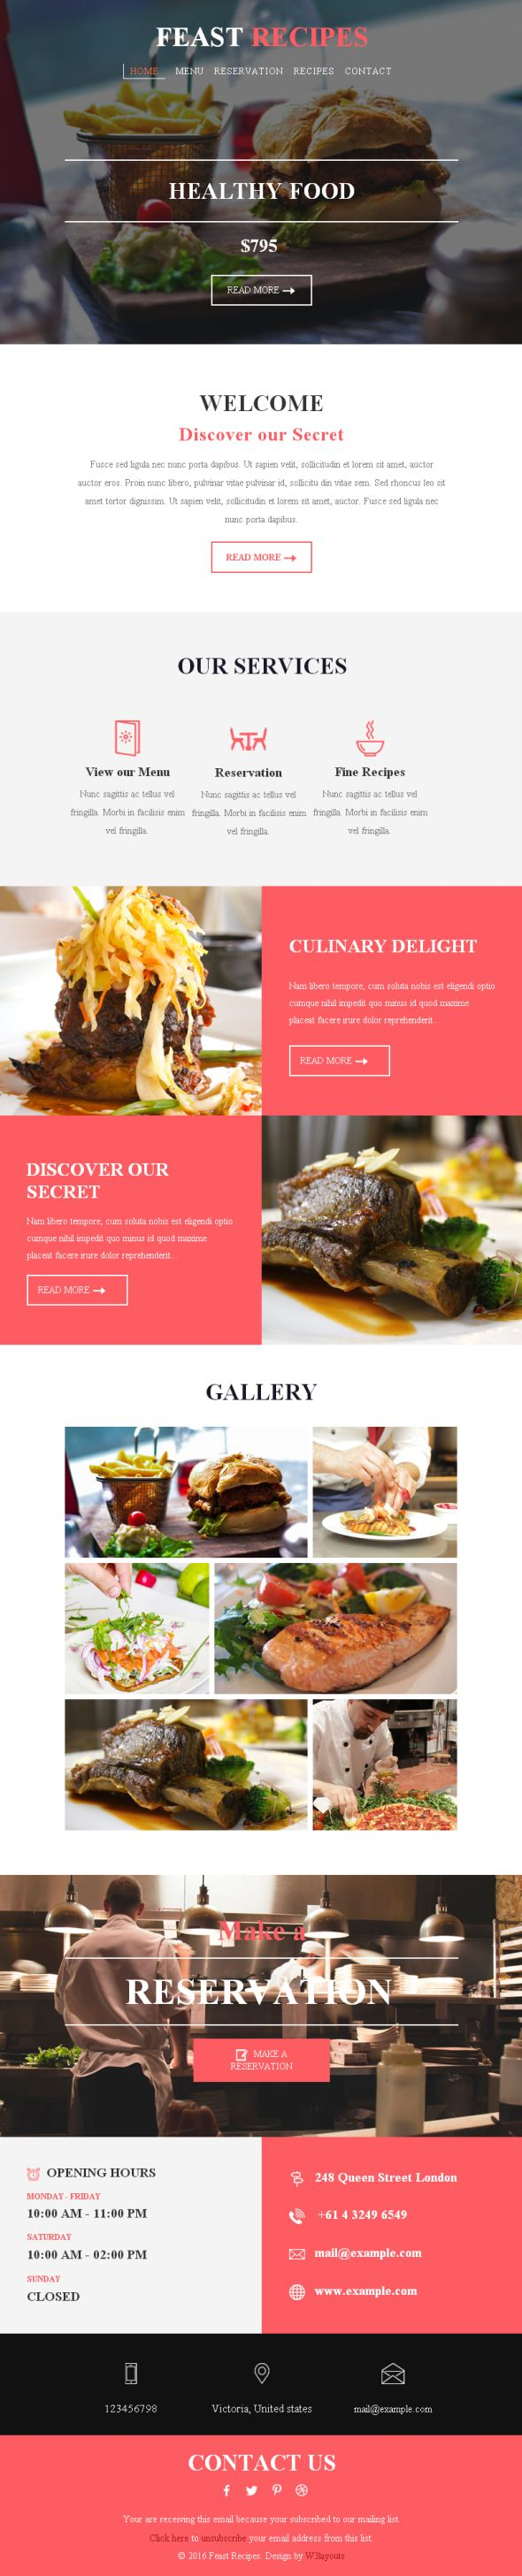 feast-recipes-newsletter-template